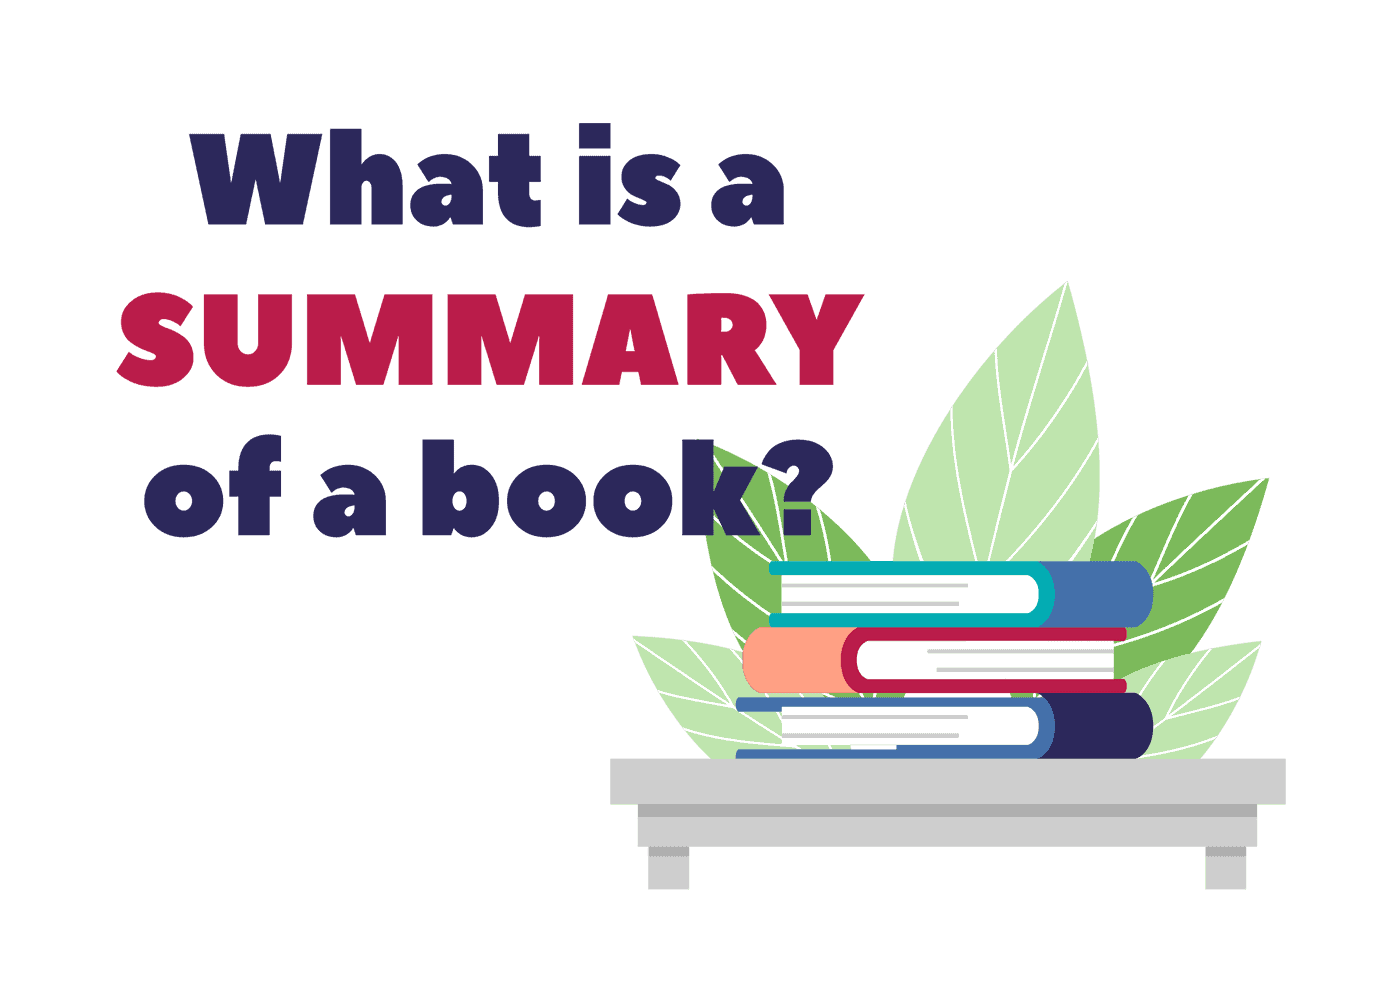 What is a summary of a book?